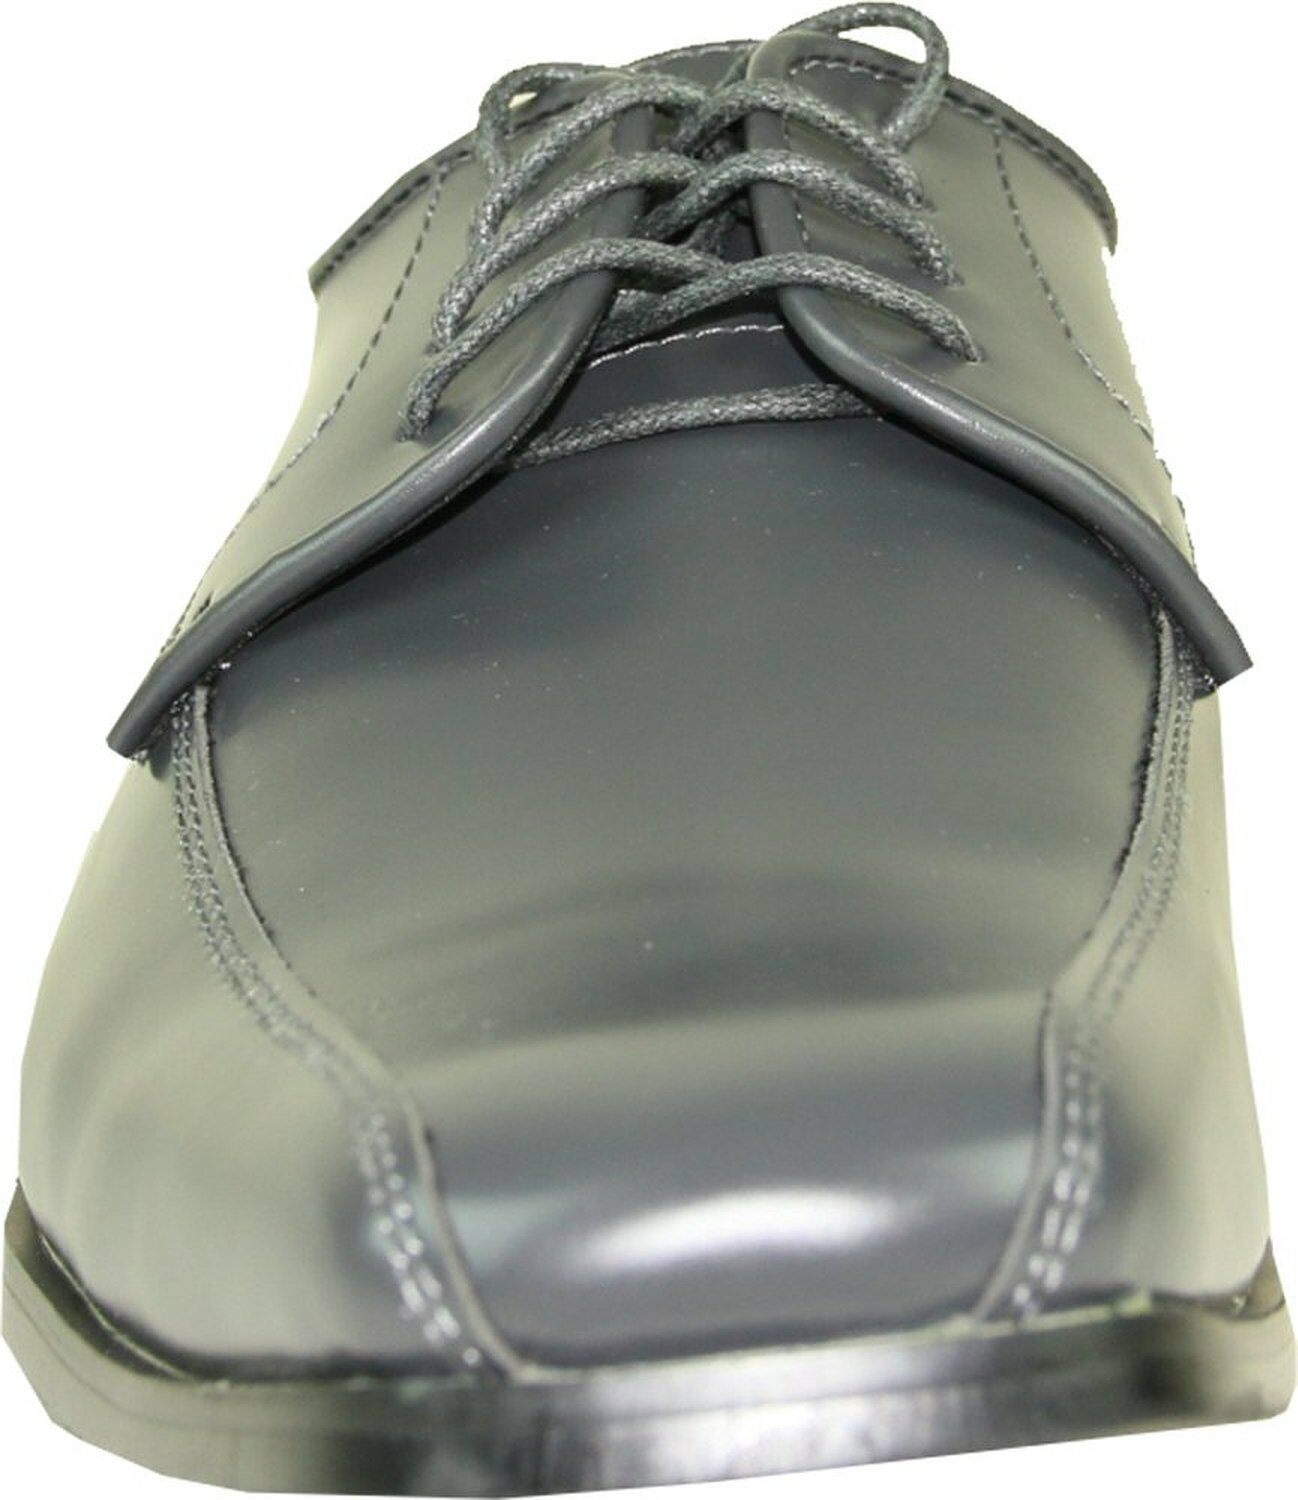 VANGELO/TUX-5 Wrinkle Free Uomo Dress Scarpe Bicycle Bicycle Bicycle Toe Iron Grey Sz 6.5M 80664f